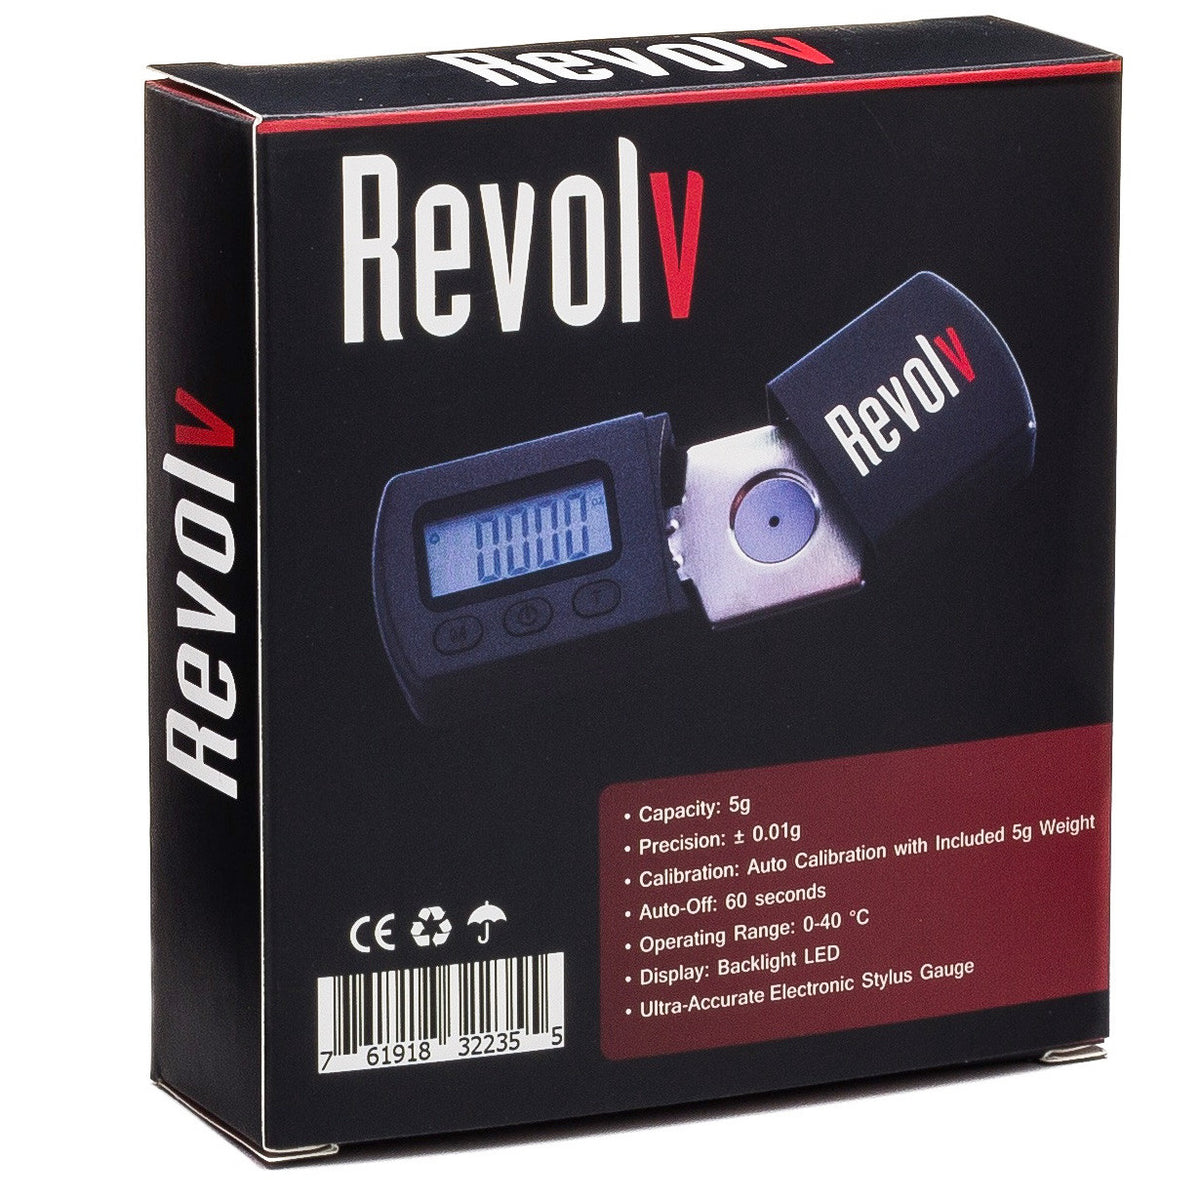 Revolv: Turntable Stylus Gauge Box